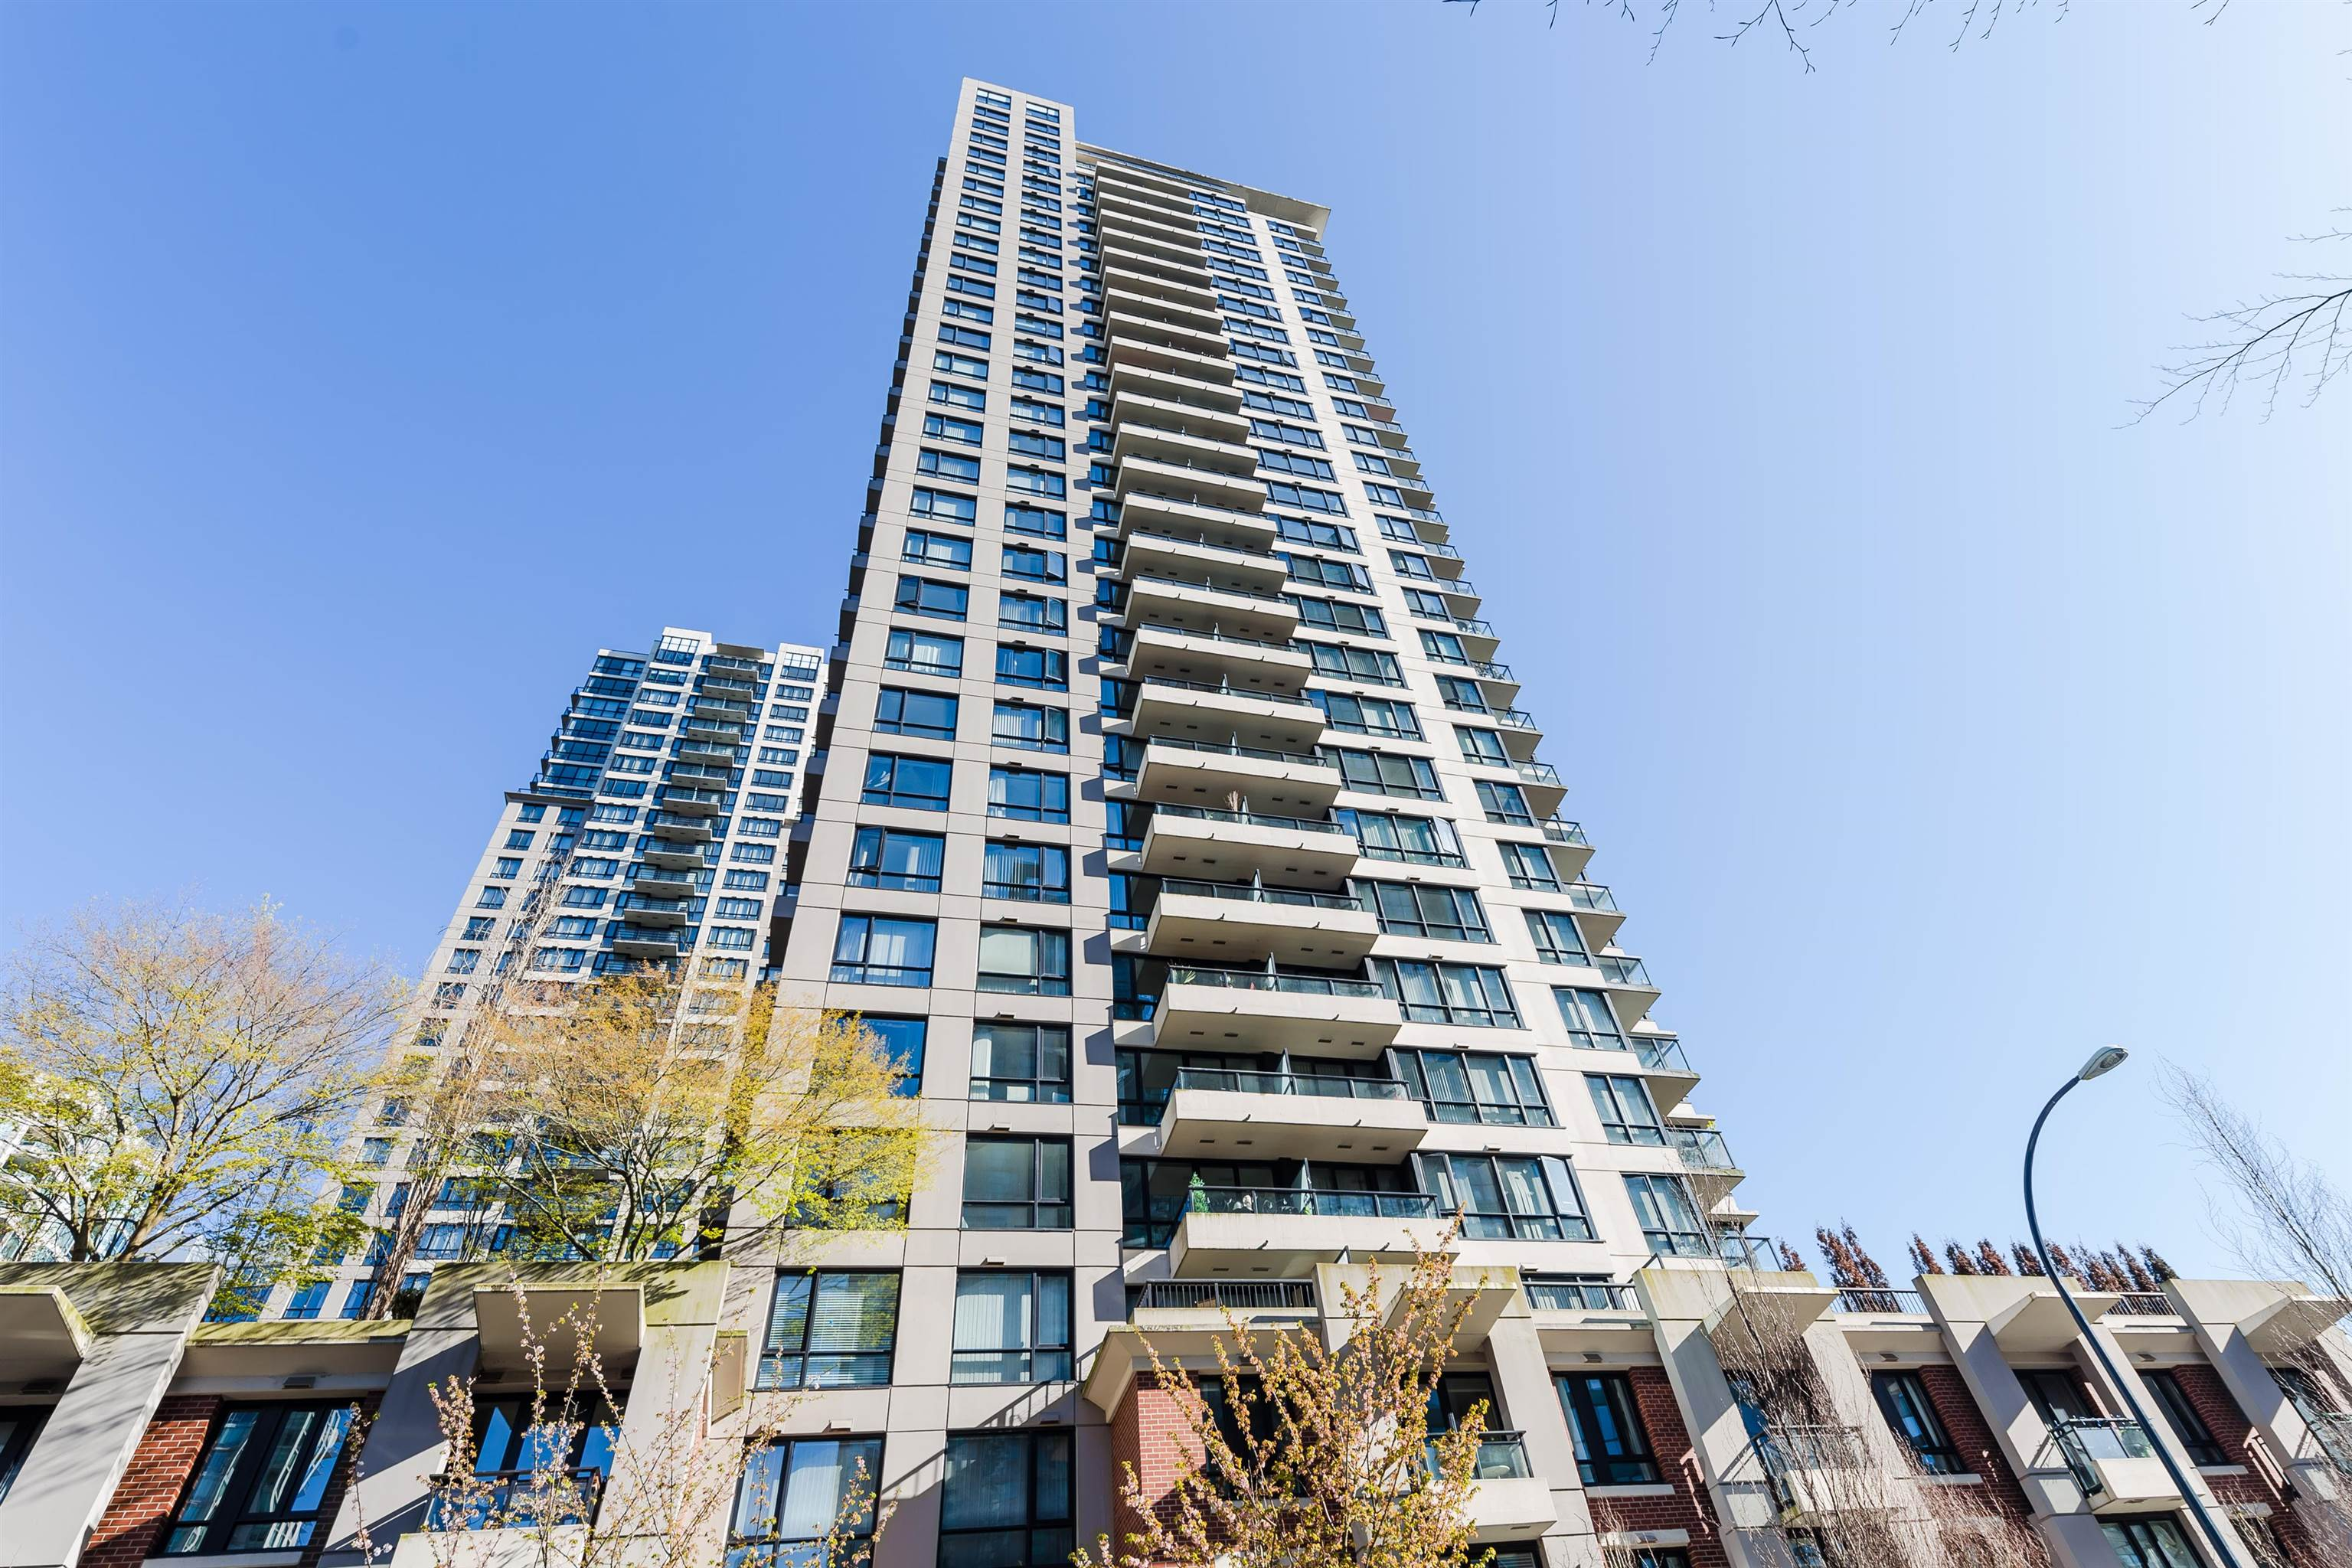 2308 928 HOMER STREET - Yaletown Apartment/Condo for sale, 1 Bedroom (R2614128) - #1